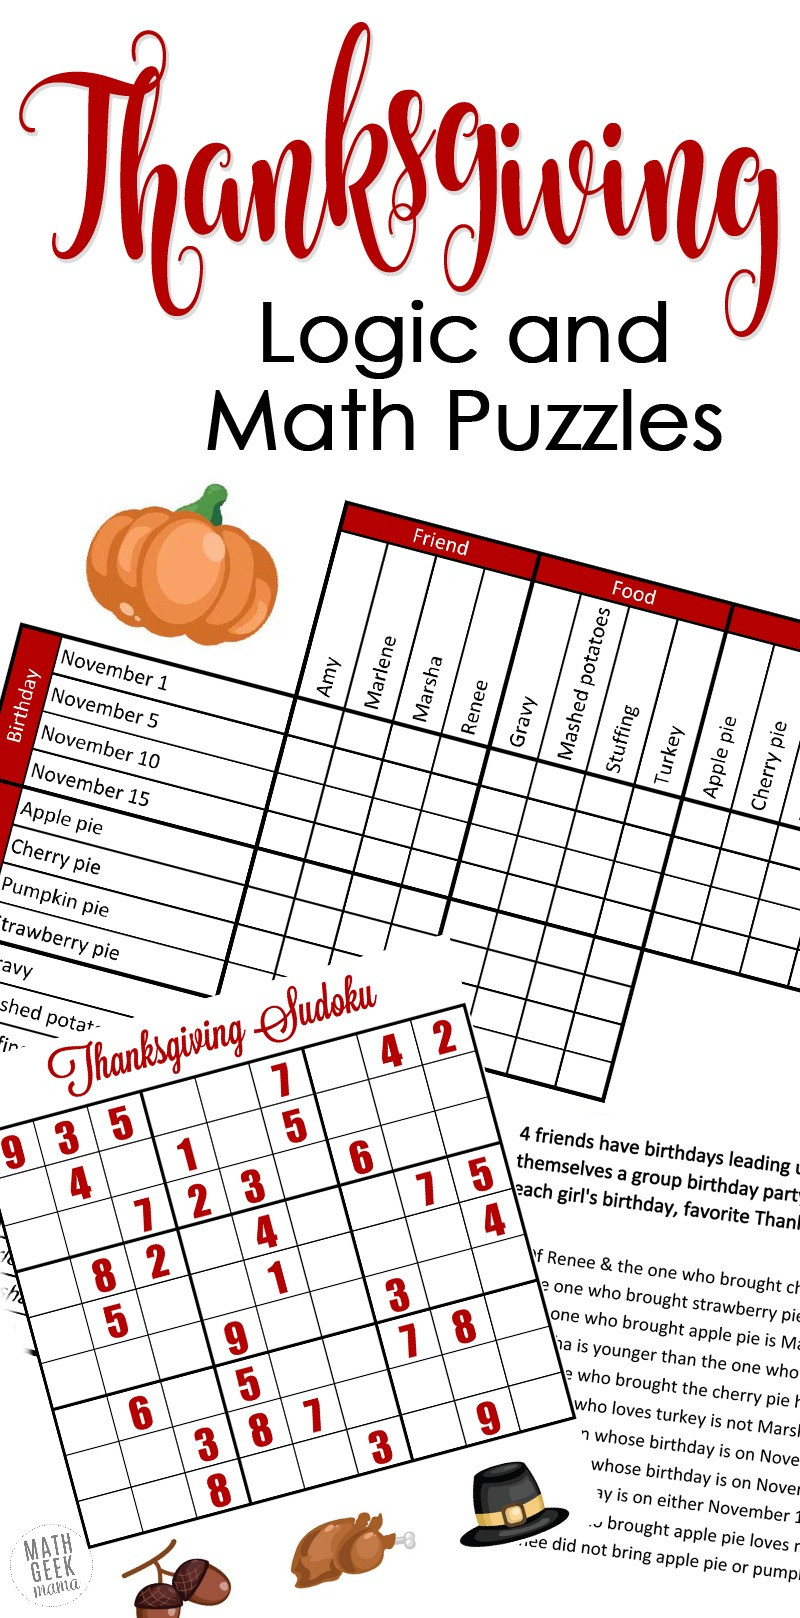 6th Grade Math Puzzles Worksheets Free Fun Thanksgiving Math Puzzles for Older Kids